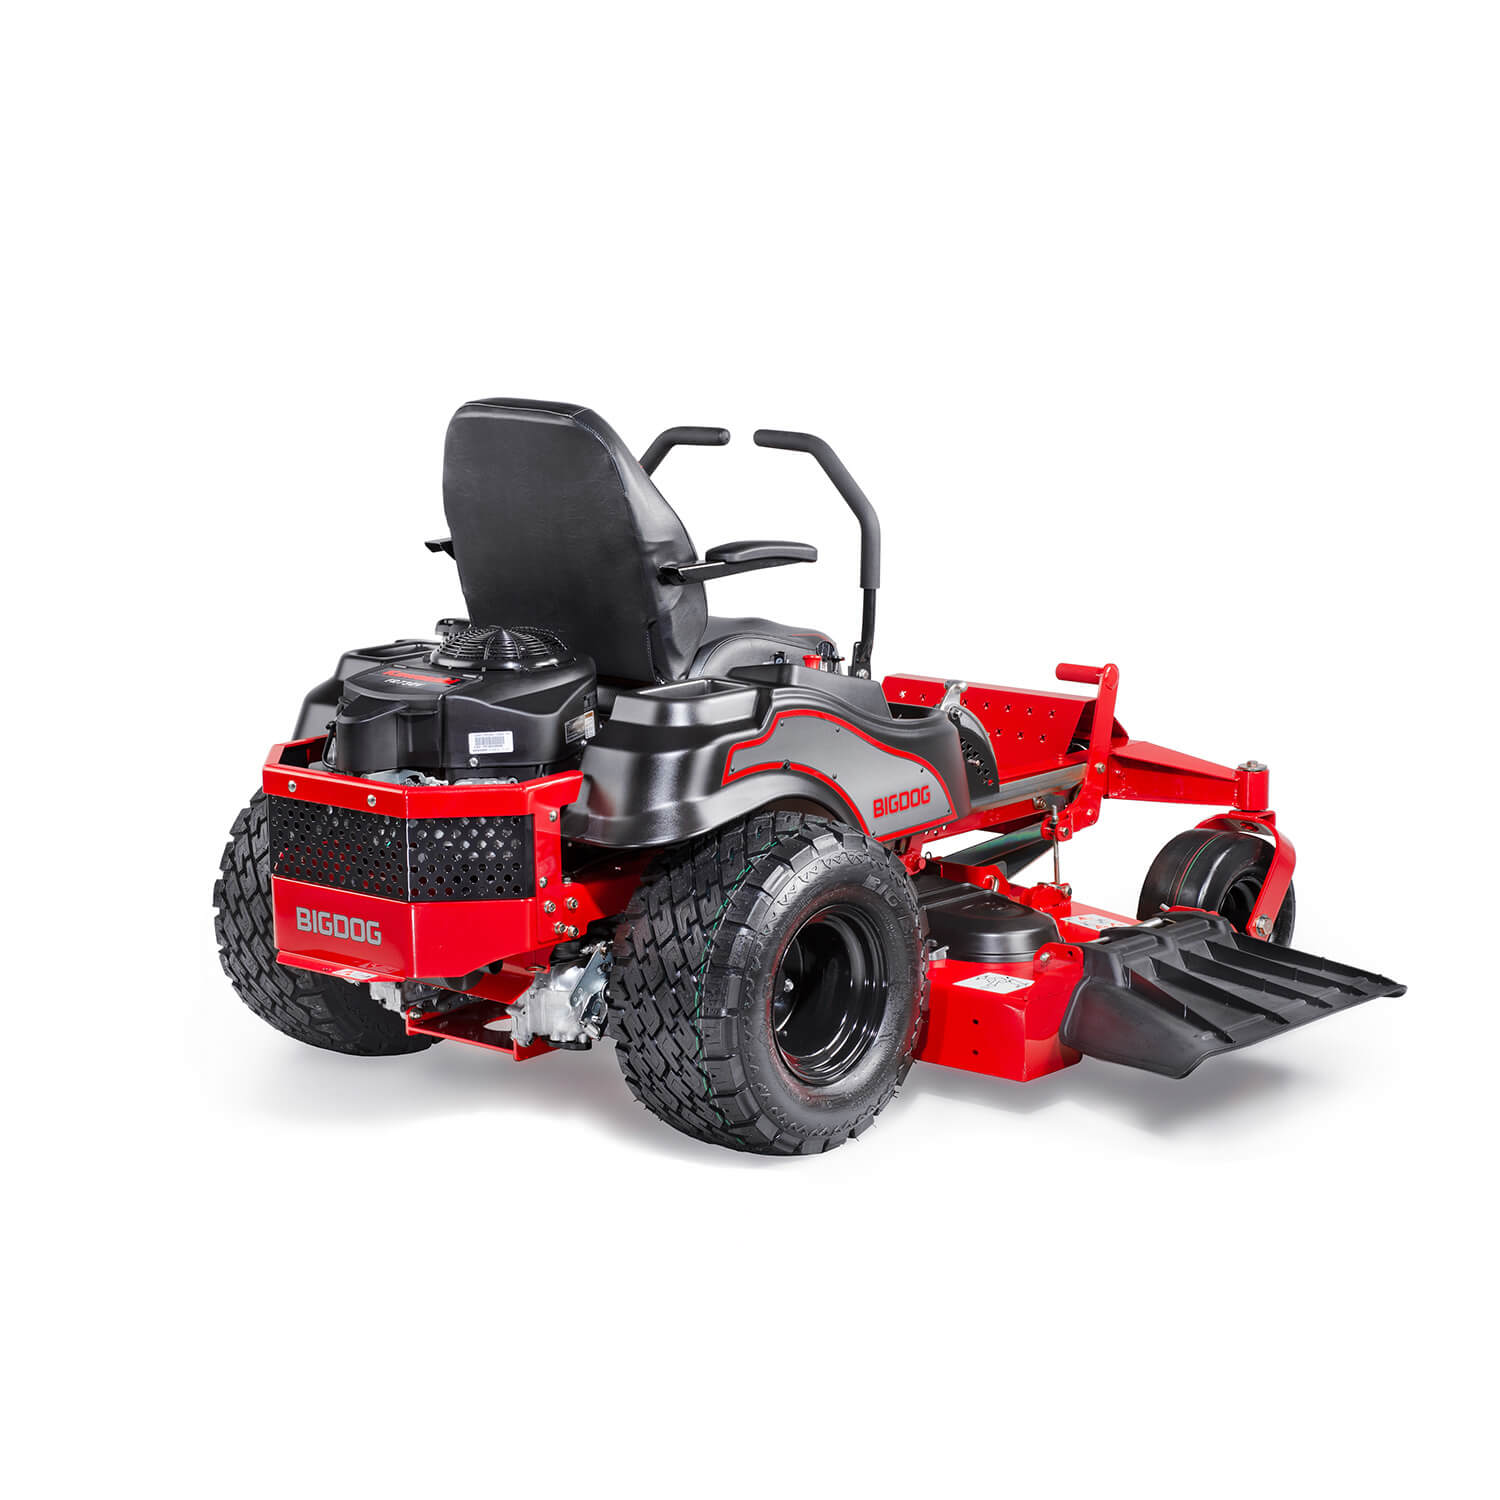 Image of the profile of a riding mower on the trim side of the deck